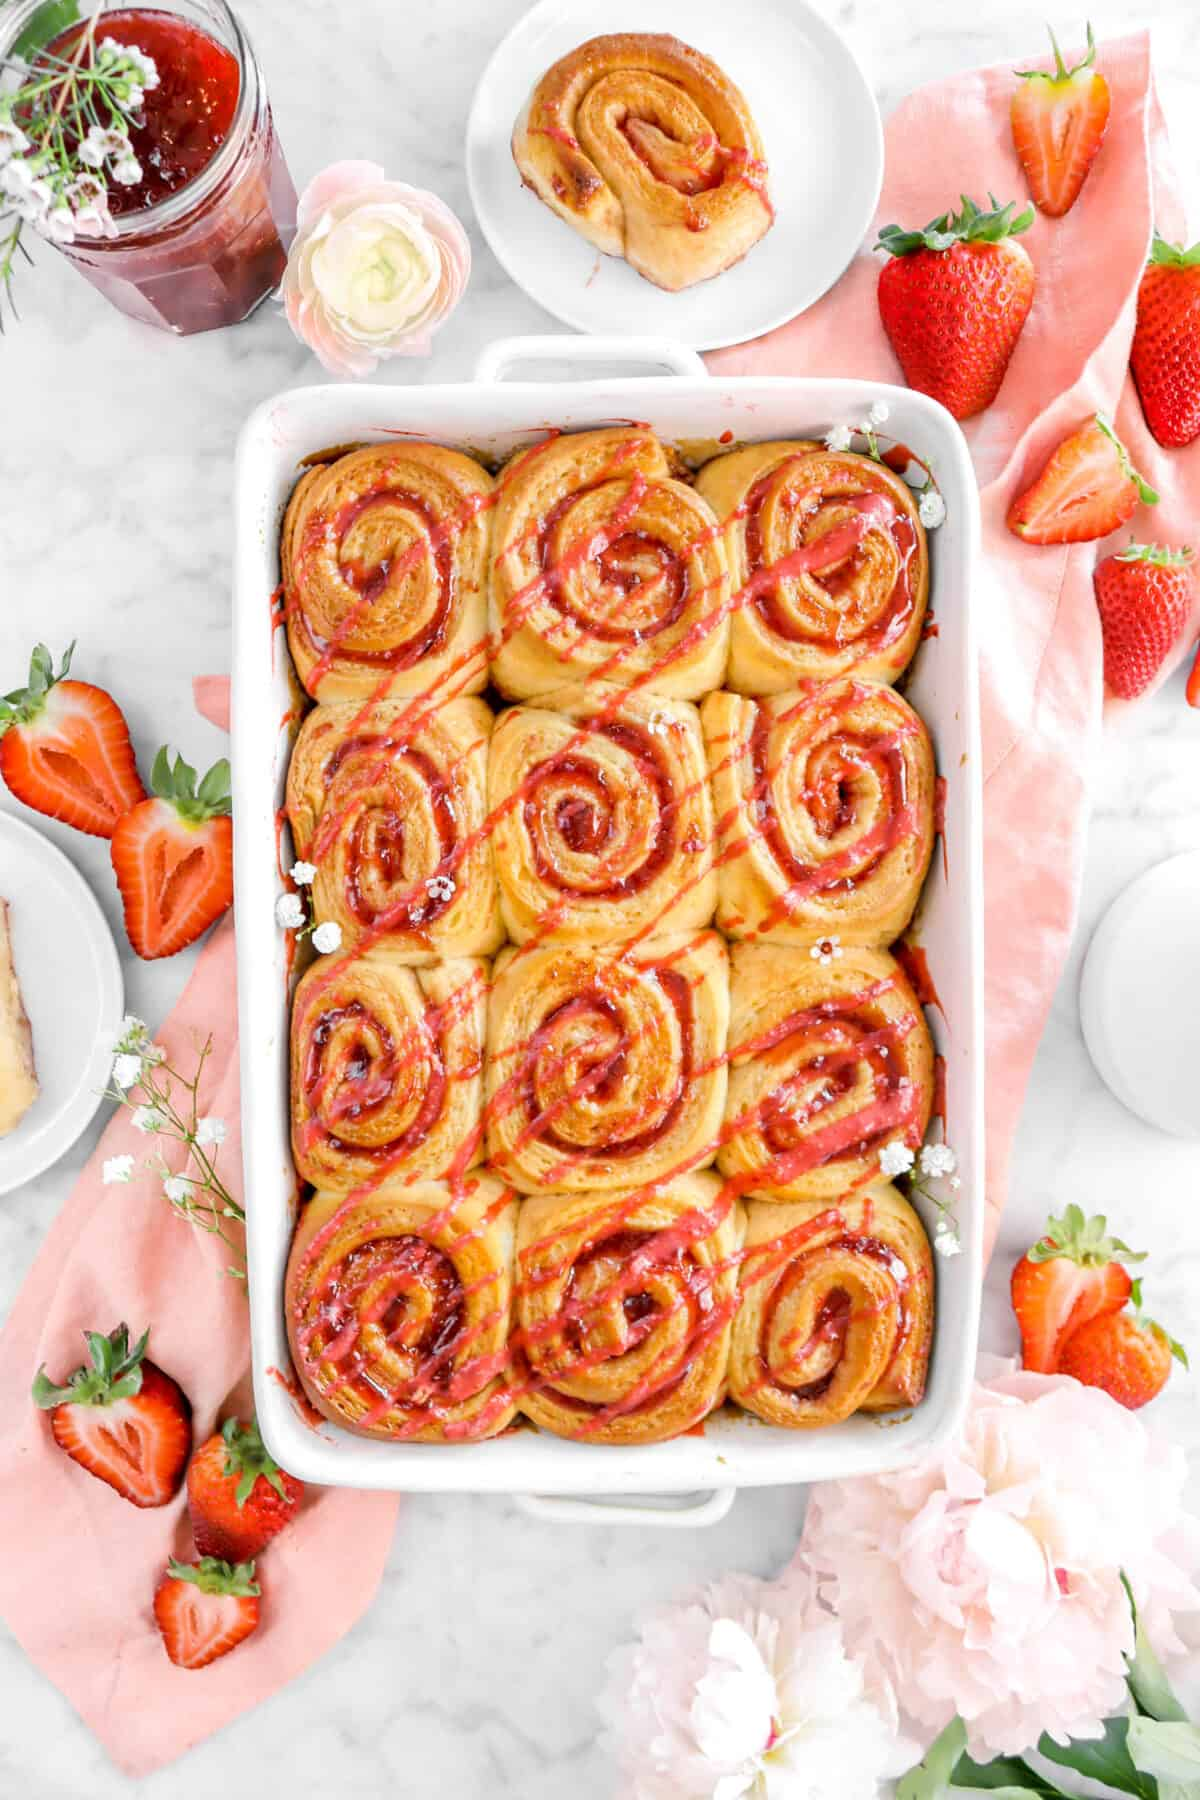 strawberry rolls on pink napkin with strawberries and flowers